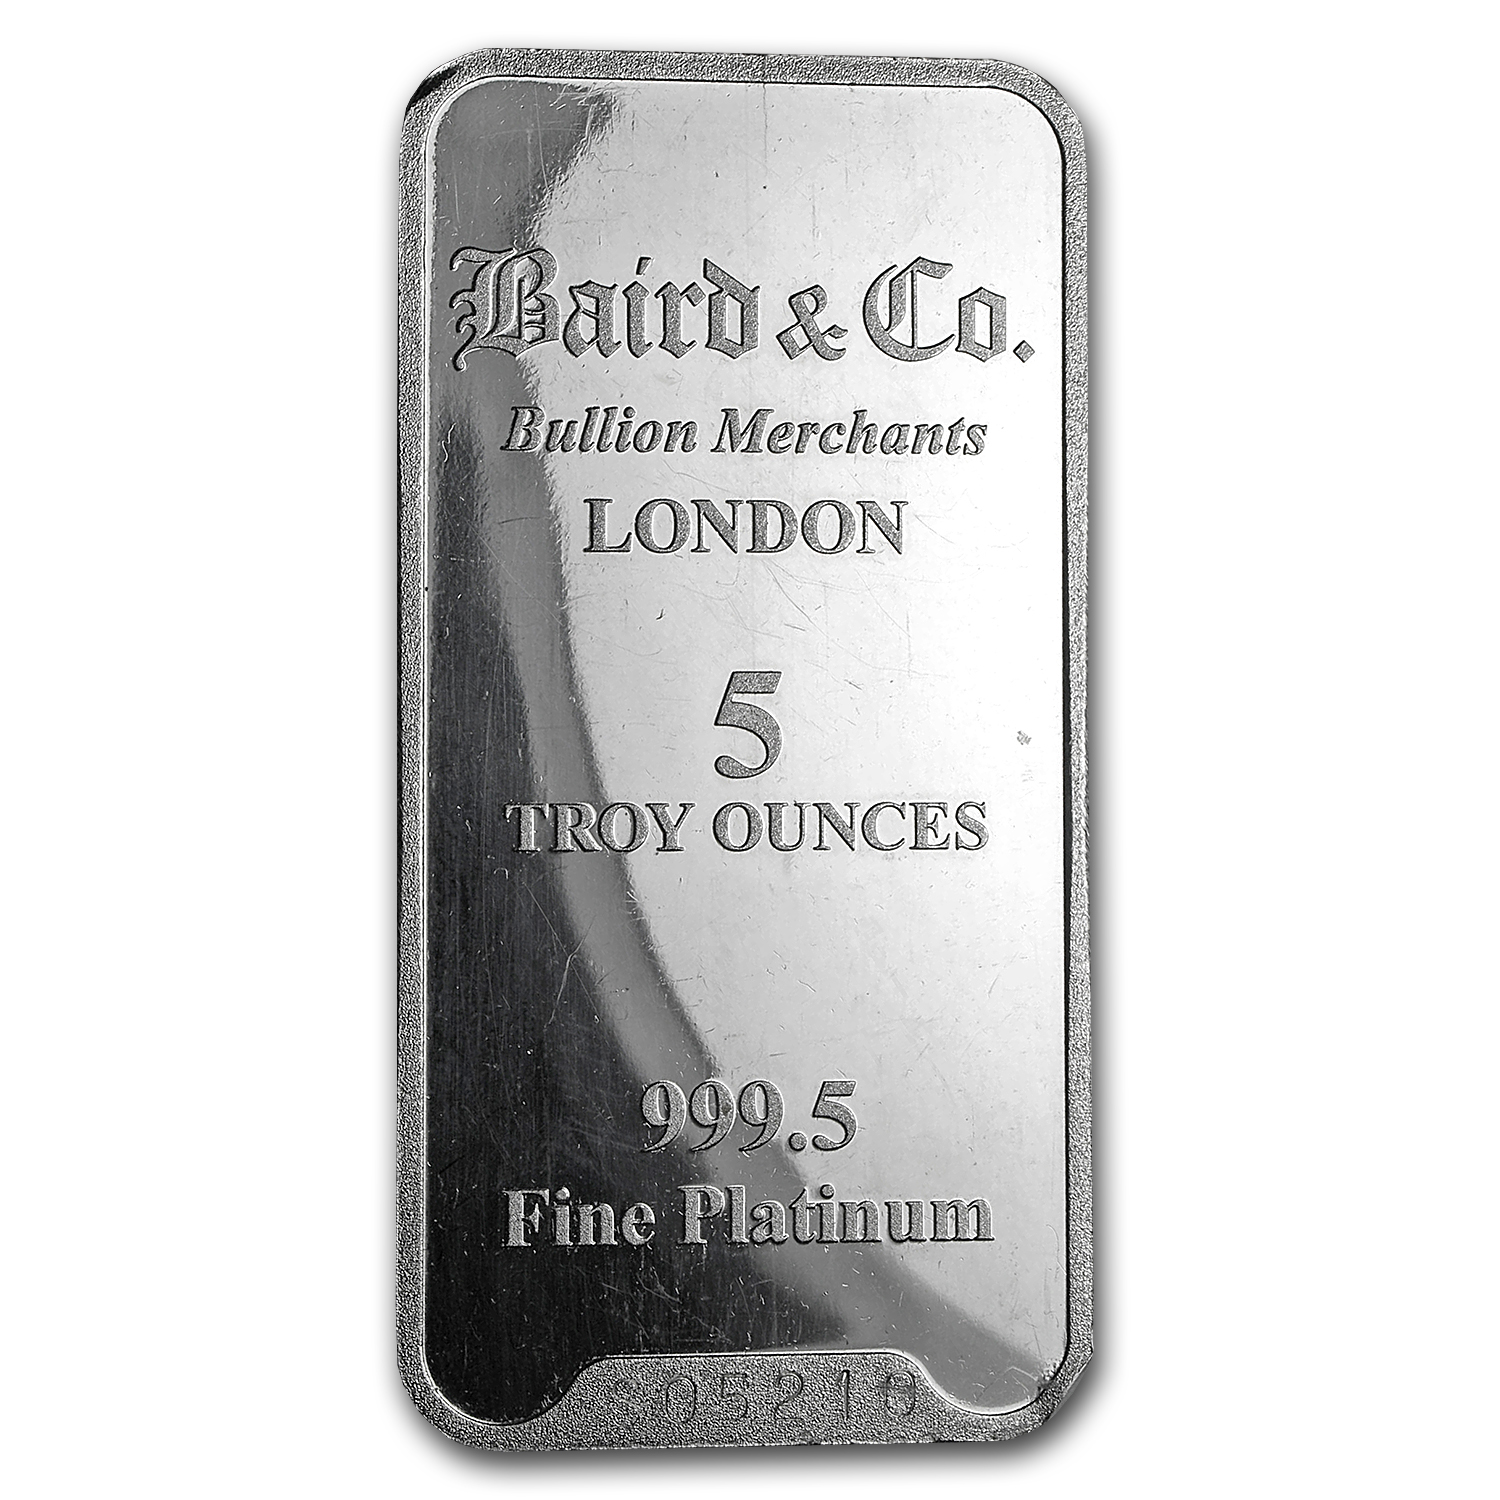 5 oz Platinum Bar - Secondary Market